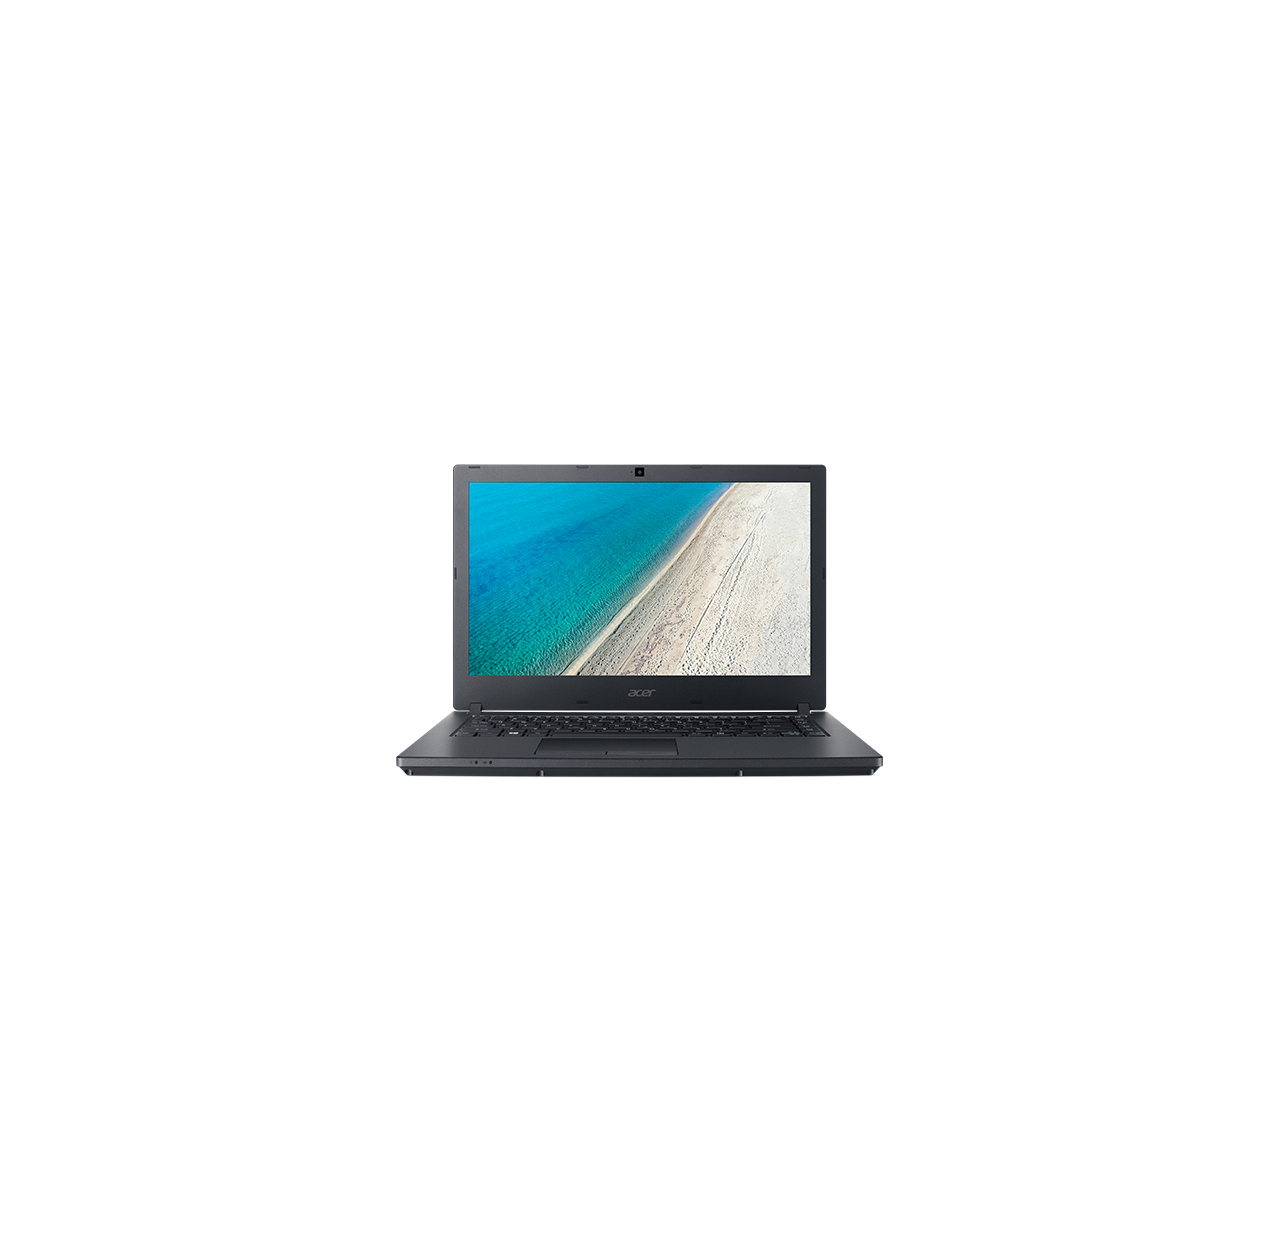 "Laptop Acer TMP2510 15,6""FHD Intel® Core™ i3 256GB SSD"